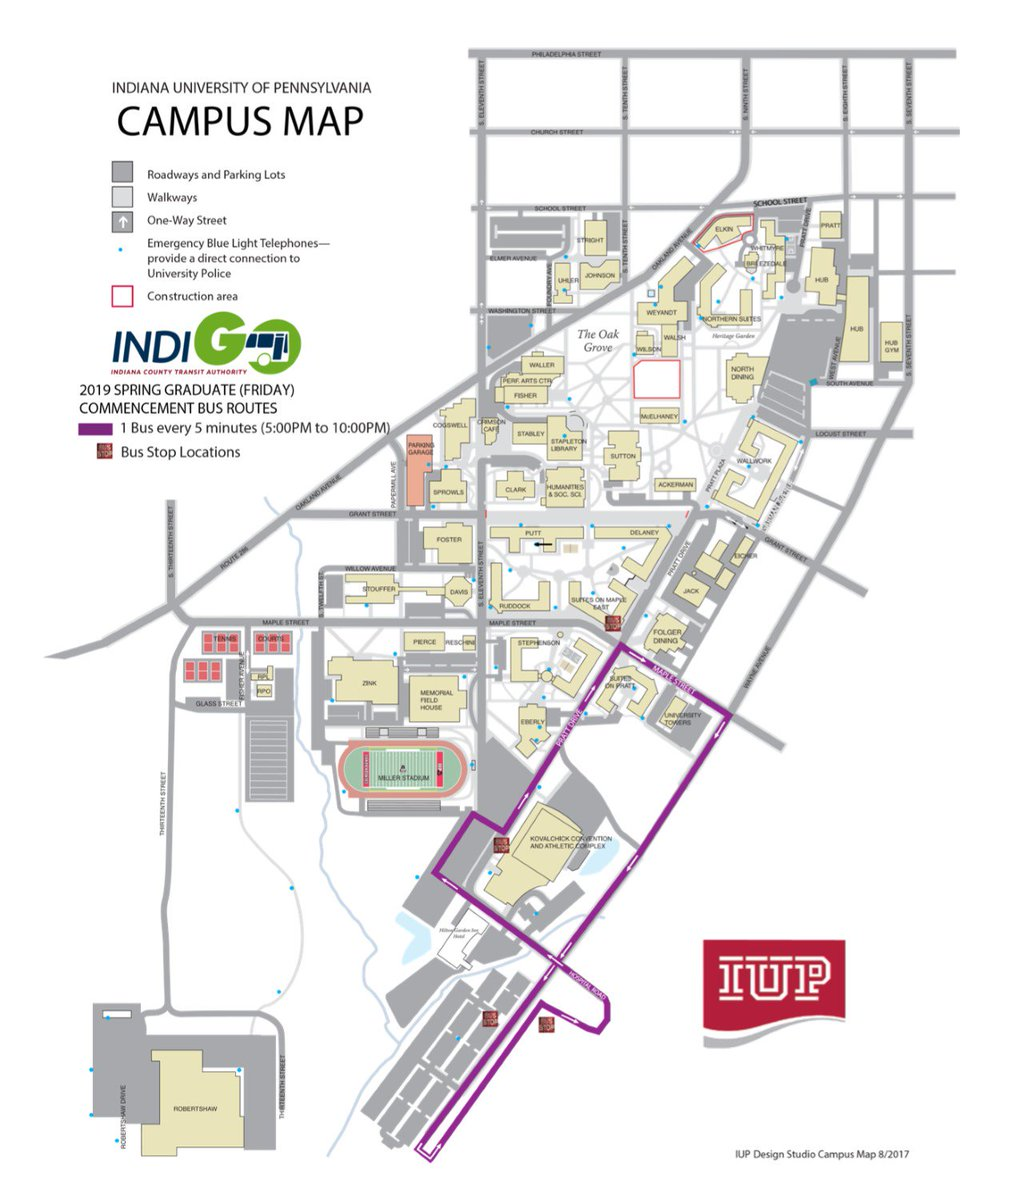 Iup Campus Map | Top New Car Release Date on california state university pennsylvania map, university of pennsylvania map, purdue university map, bucknell university pennsylvania map, lincoln university pennsylvania map, temple university map, lehigh university pennsylvania map, lafayette college pennsylvania map,